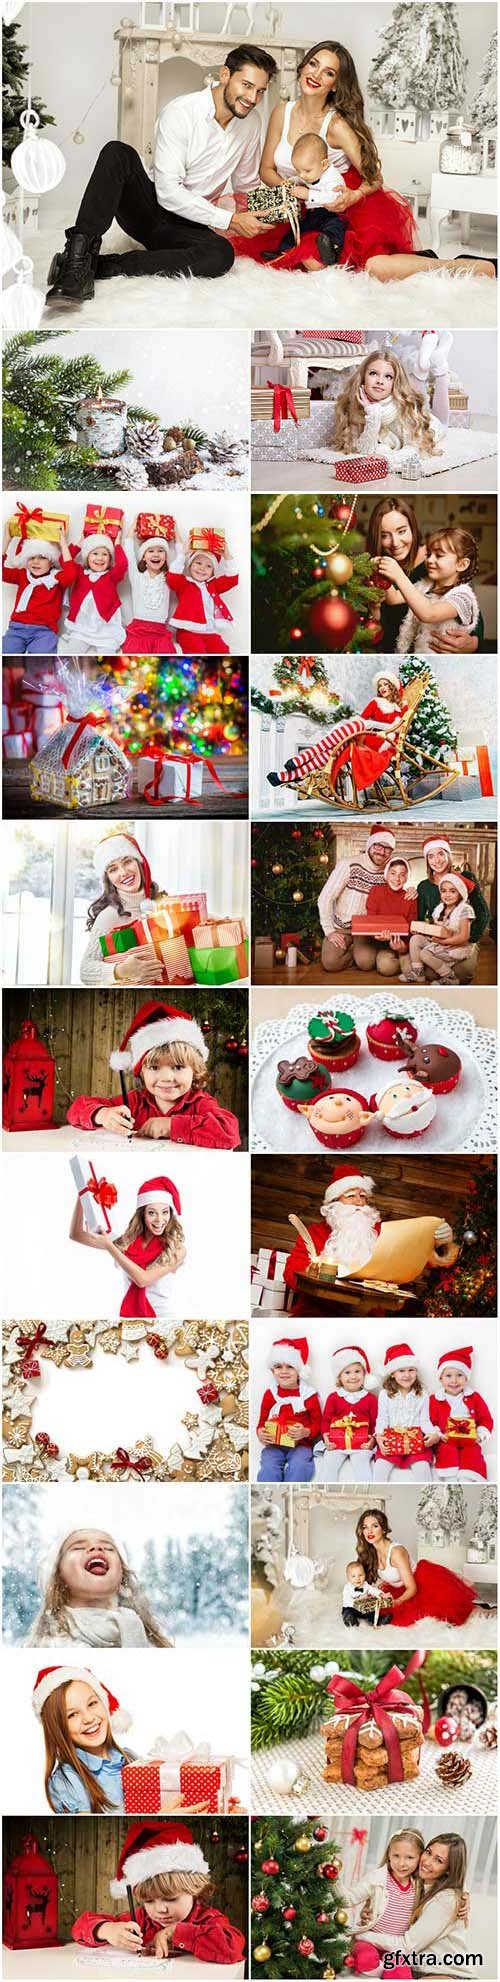 New Year and Christmas stock photos 92